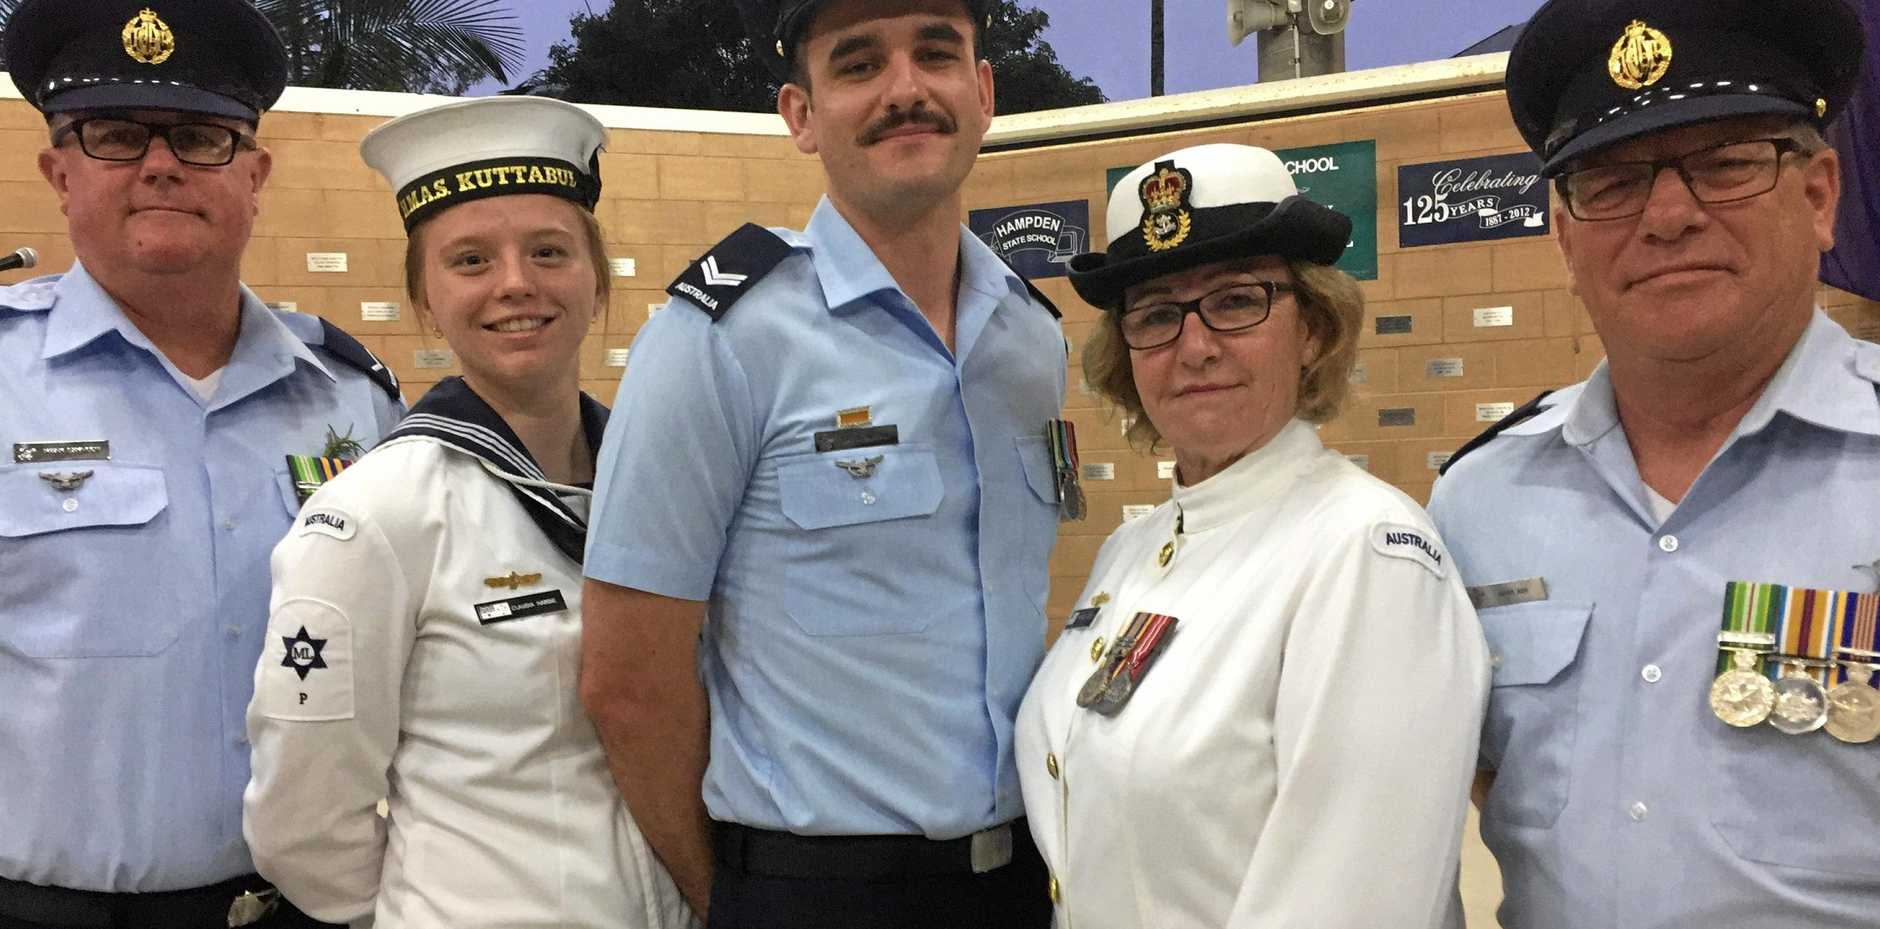 Guests of Kuttabul RSL LAC Mark Sampson, AB Claudia Hardie, CPL Brenton Finn, CPO Margie Lacey and CPL Mark Ash after Kuttabul Dawn Service.